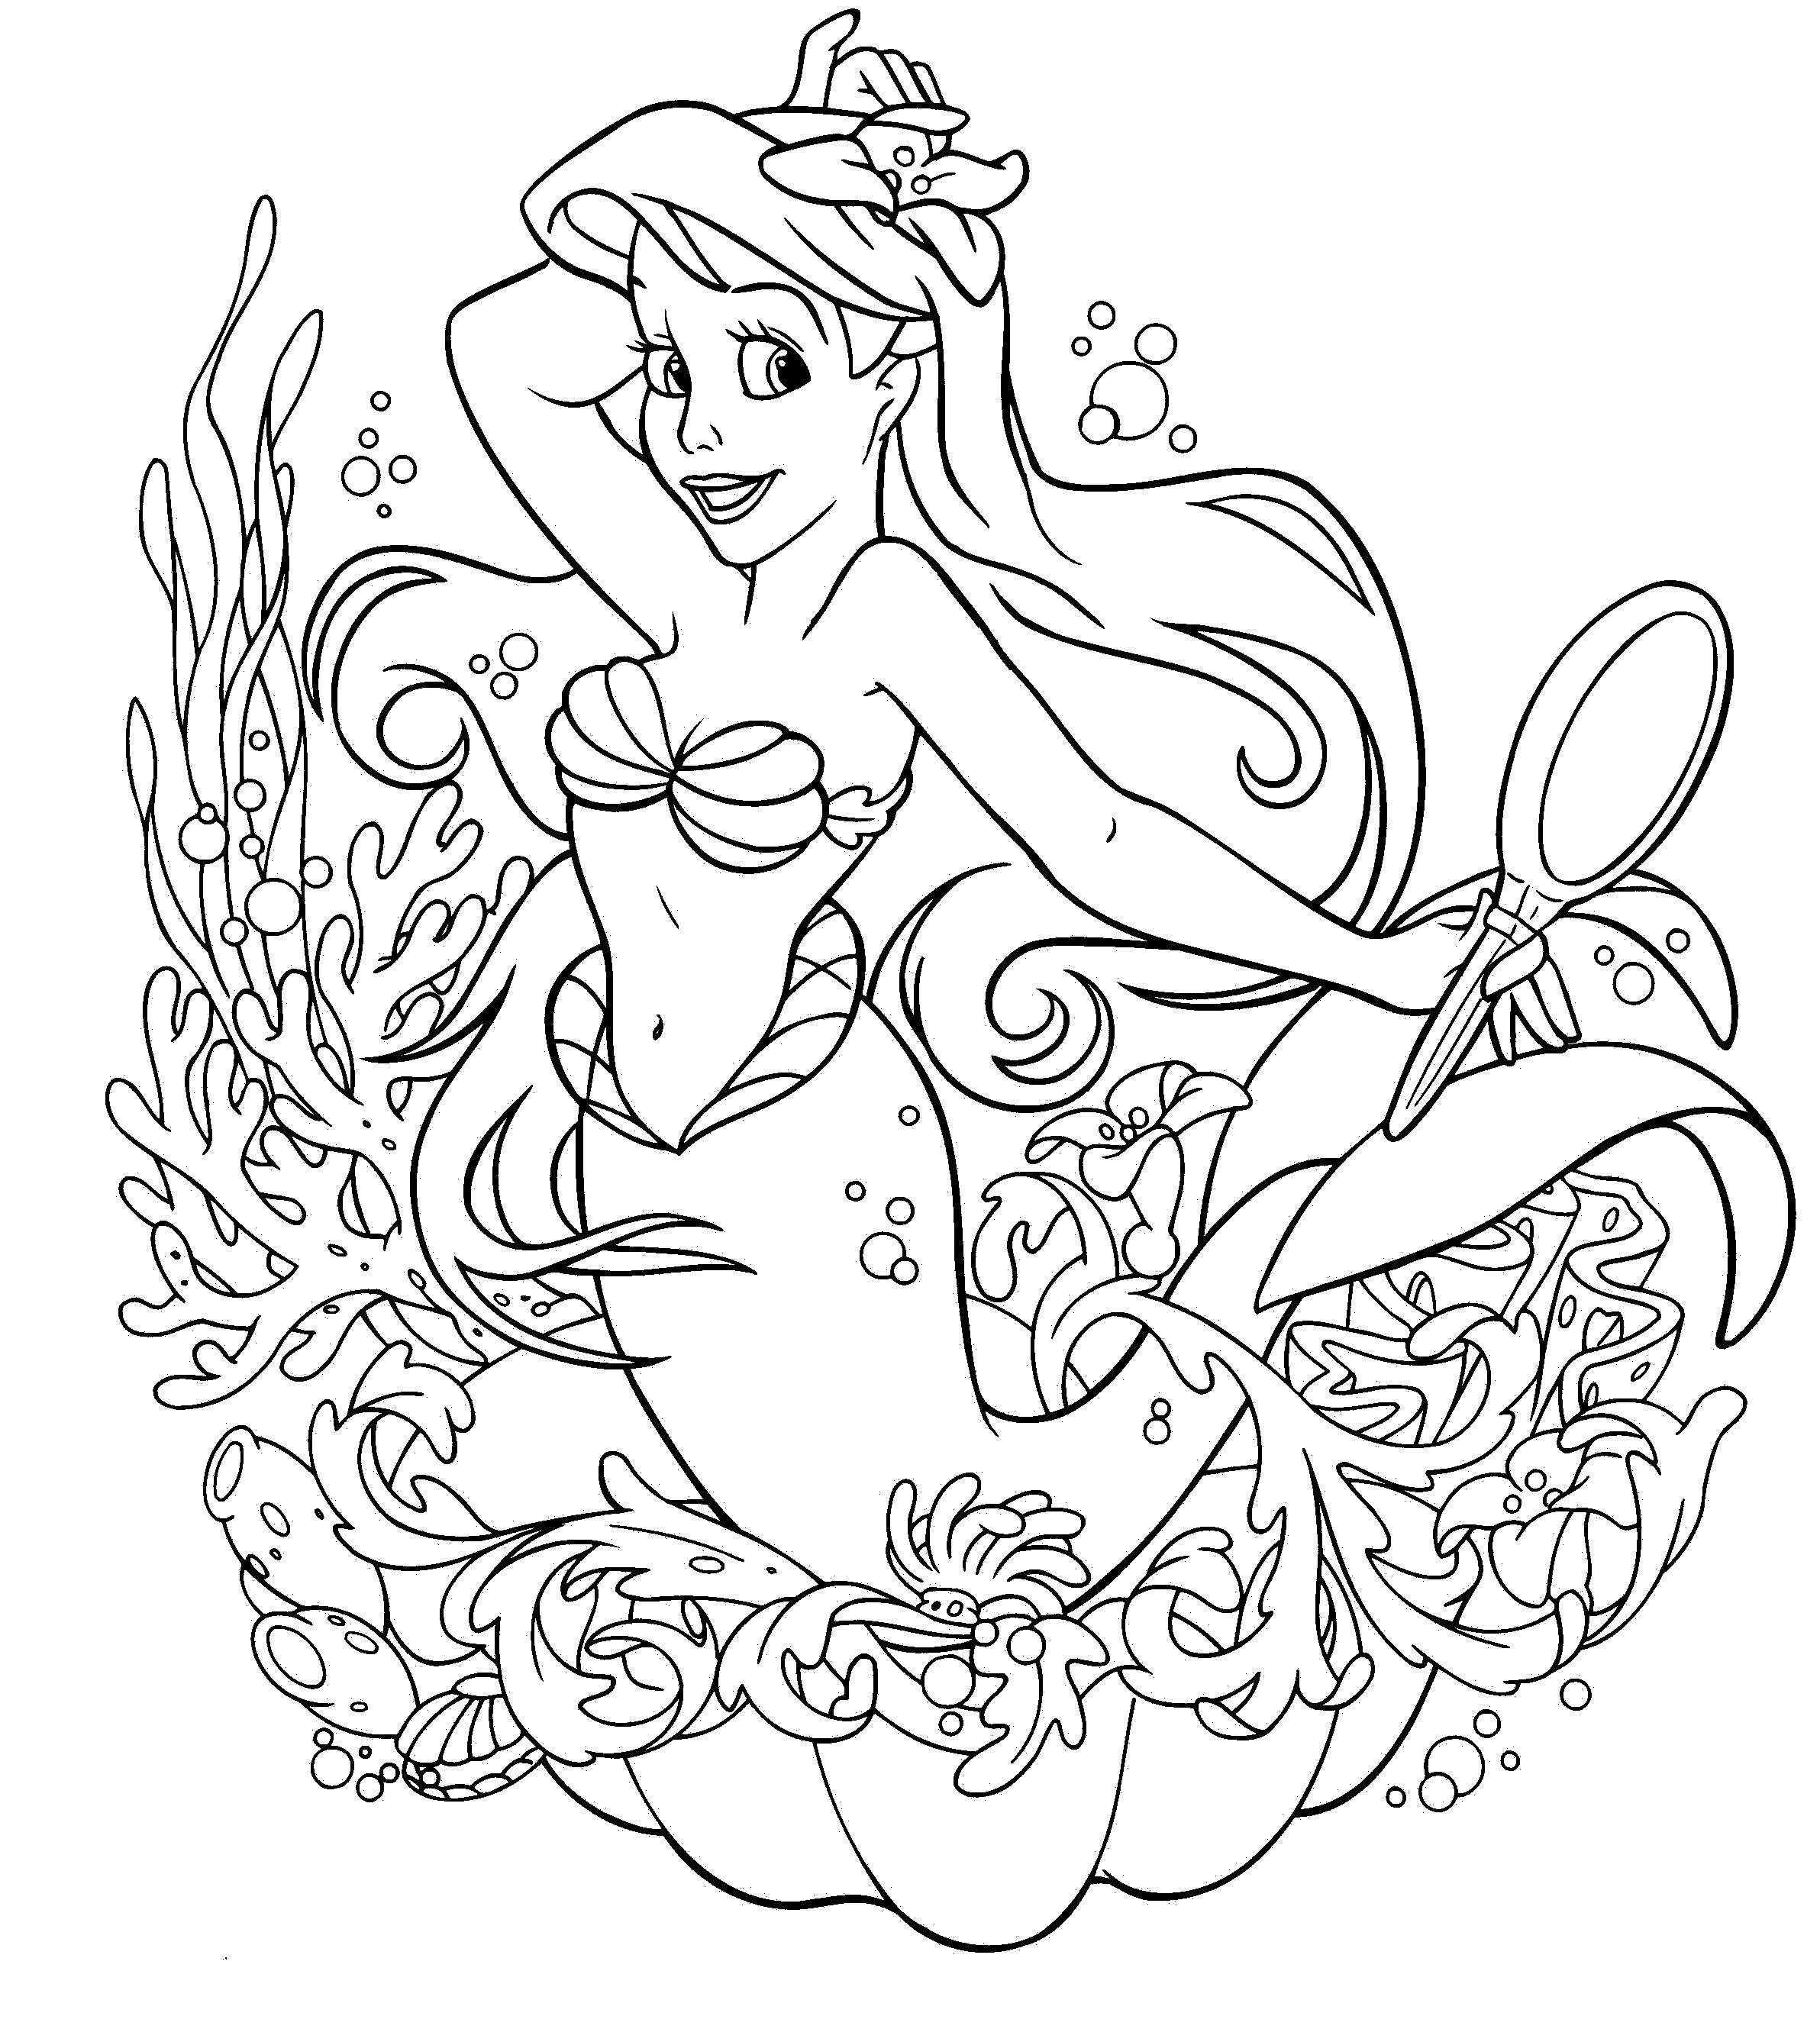 Awesome Coloring Pages Coloring Pages Pinterest Mermaid